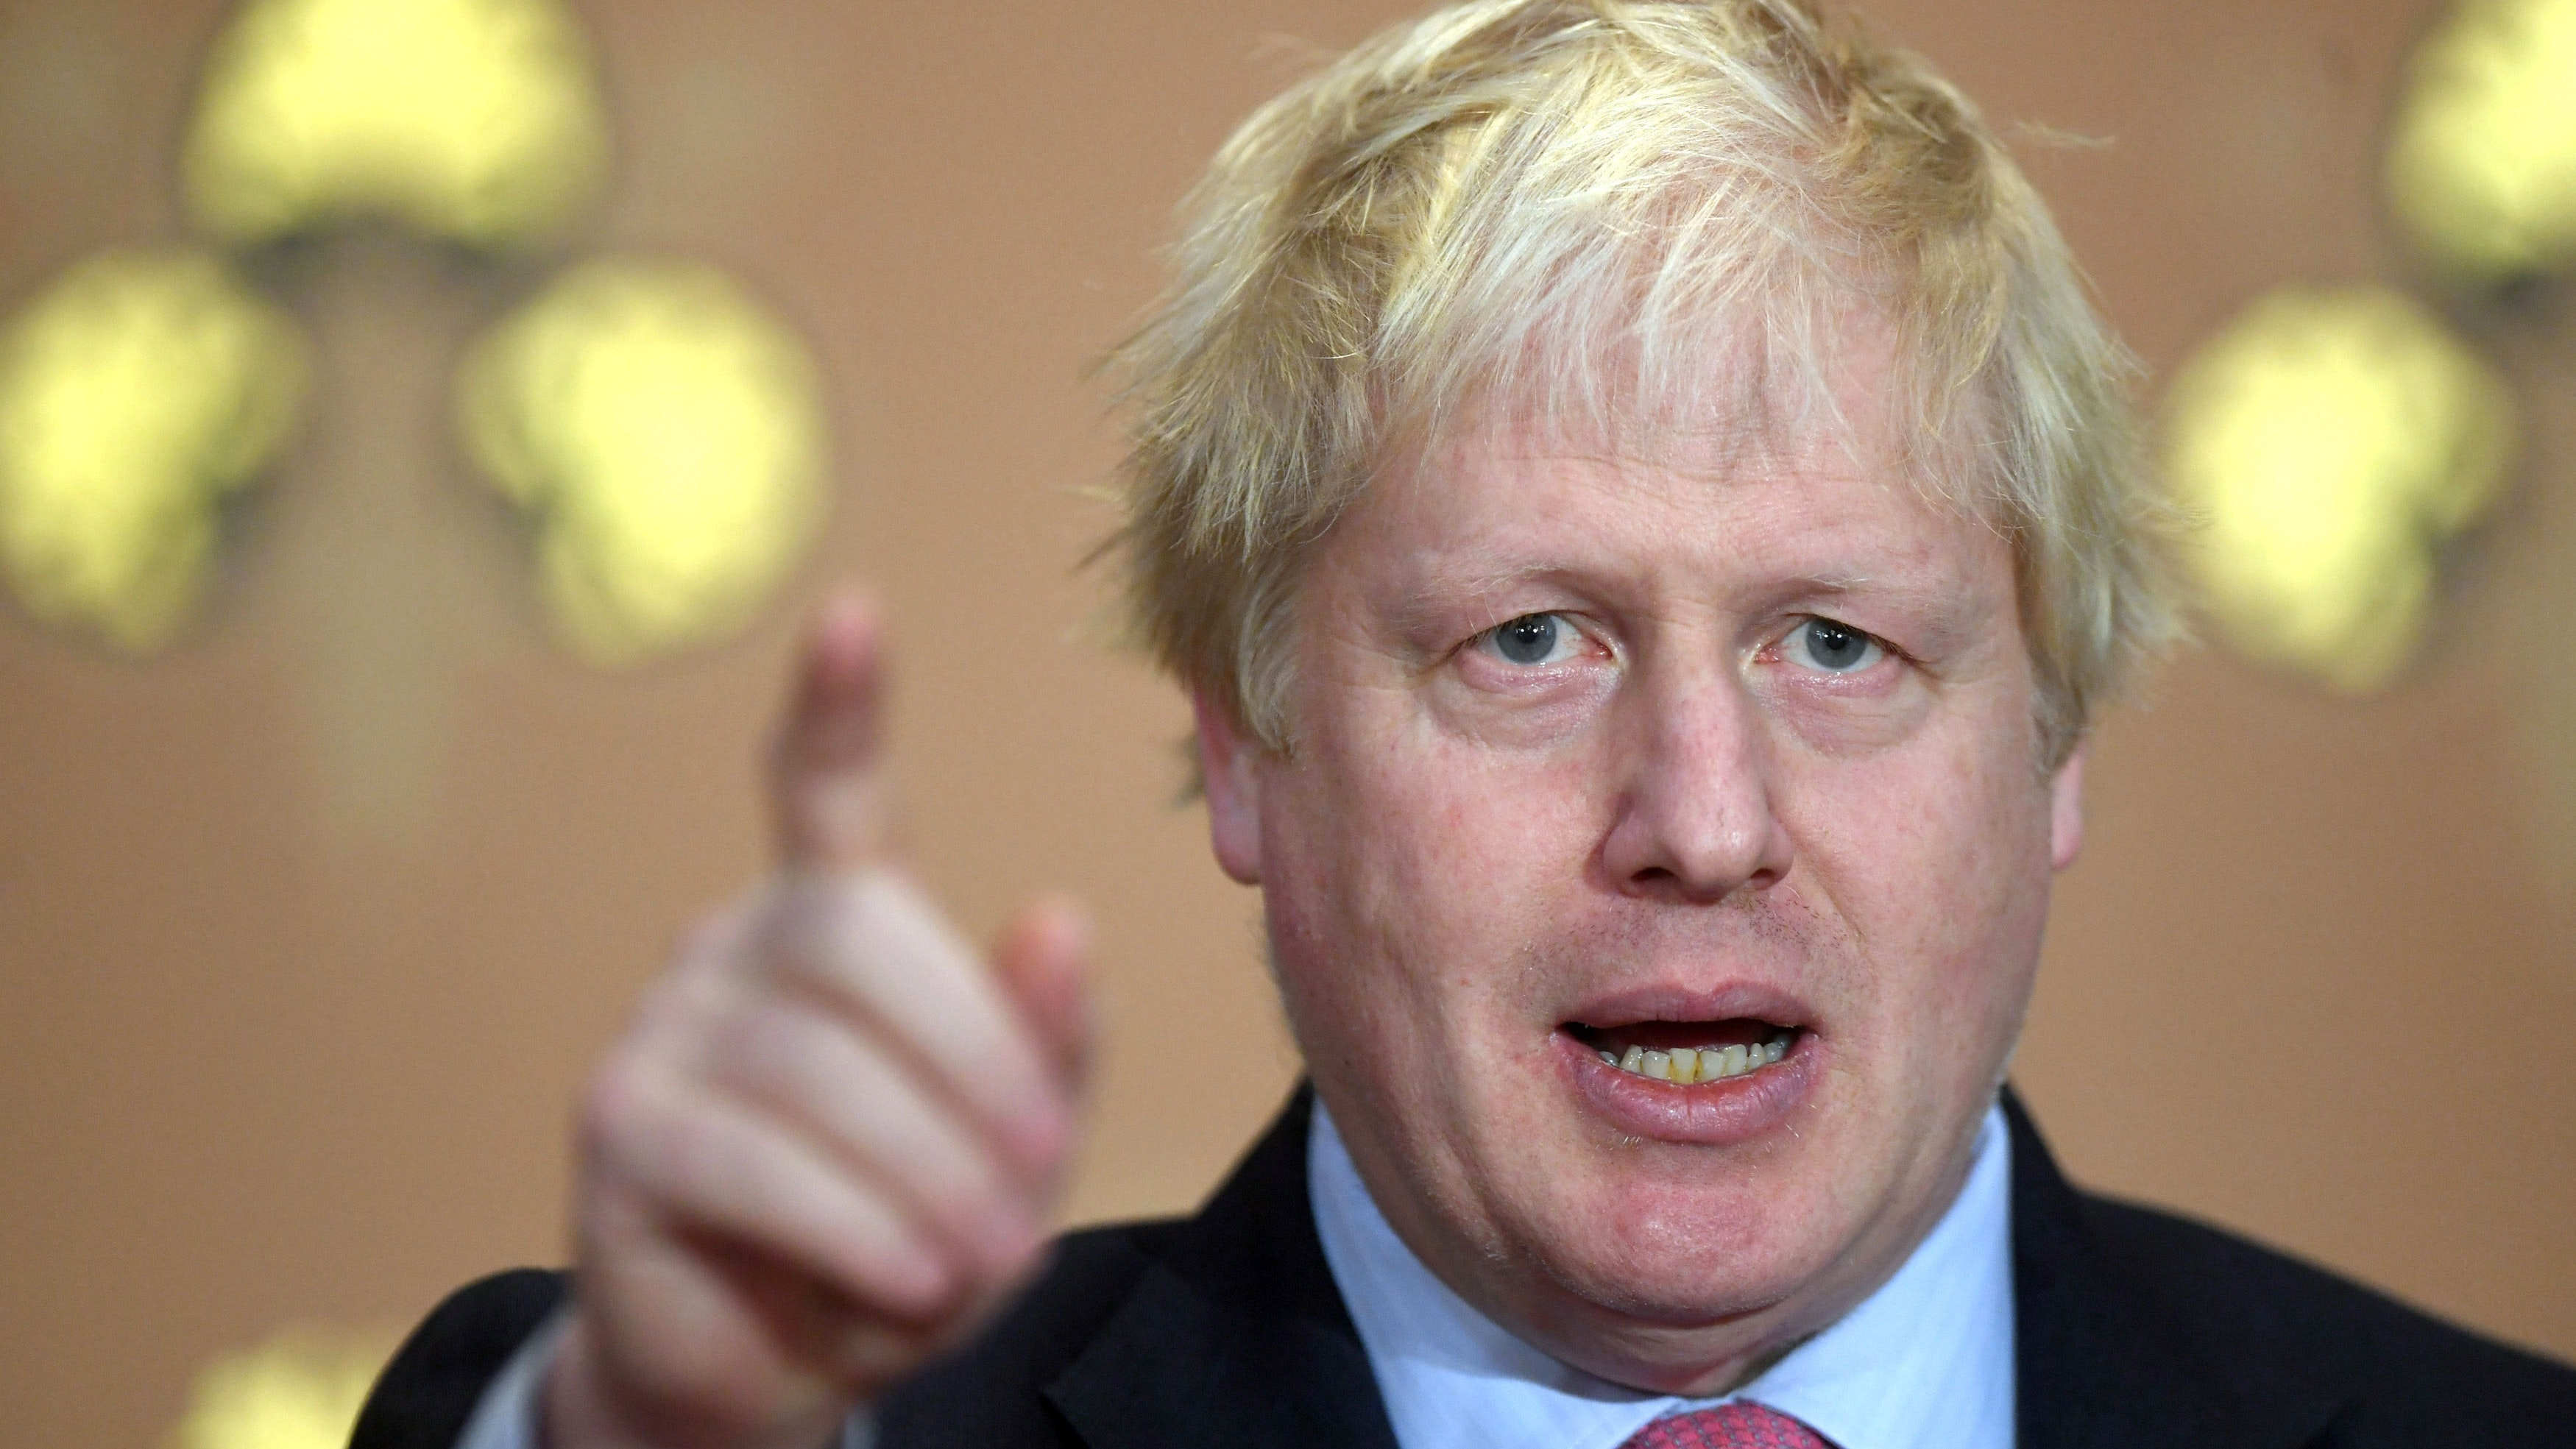 Boris Johnson Will Be Taking Burka Comment Criticism In His Stride